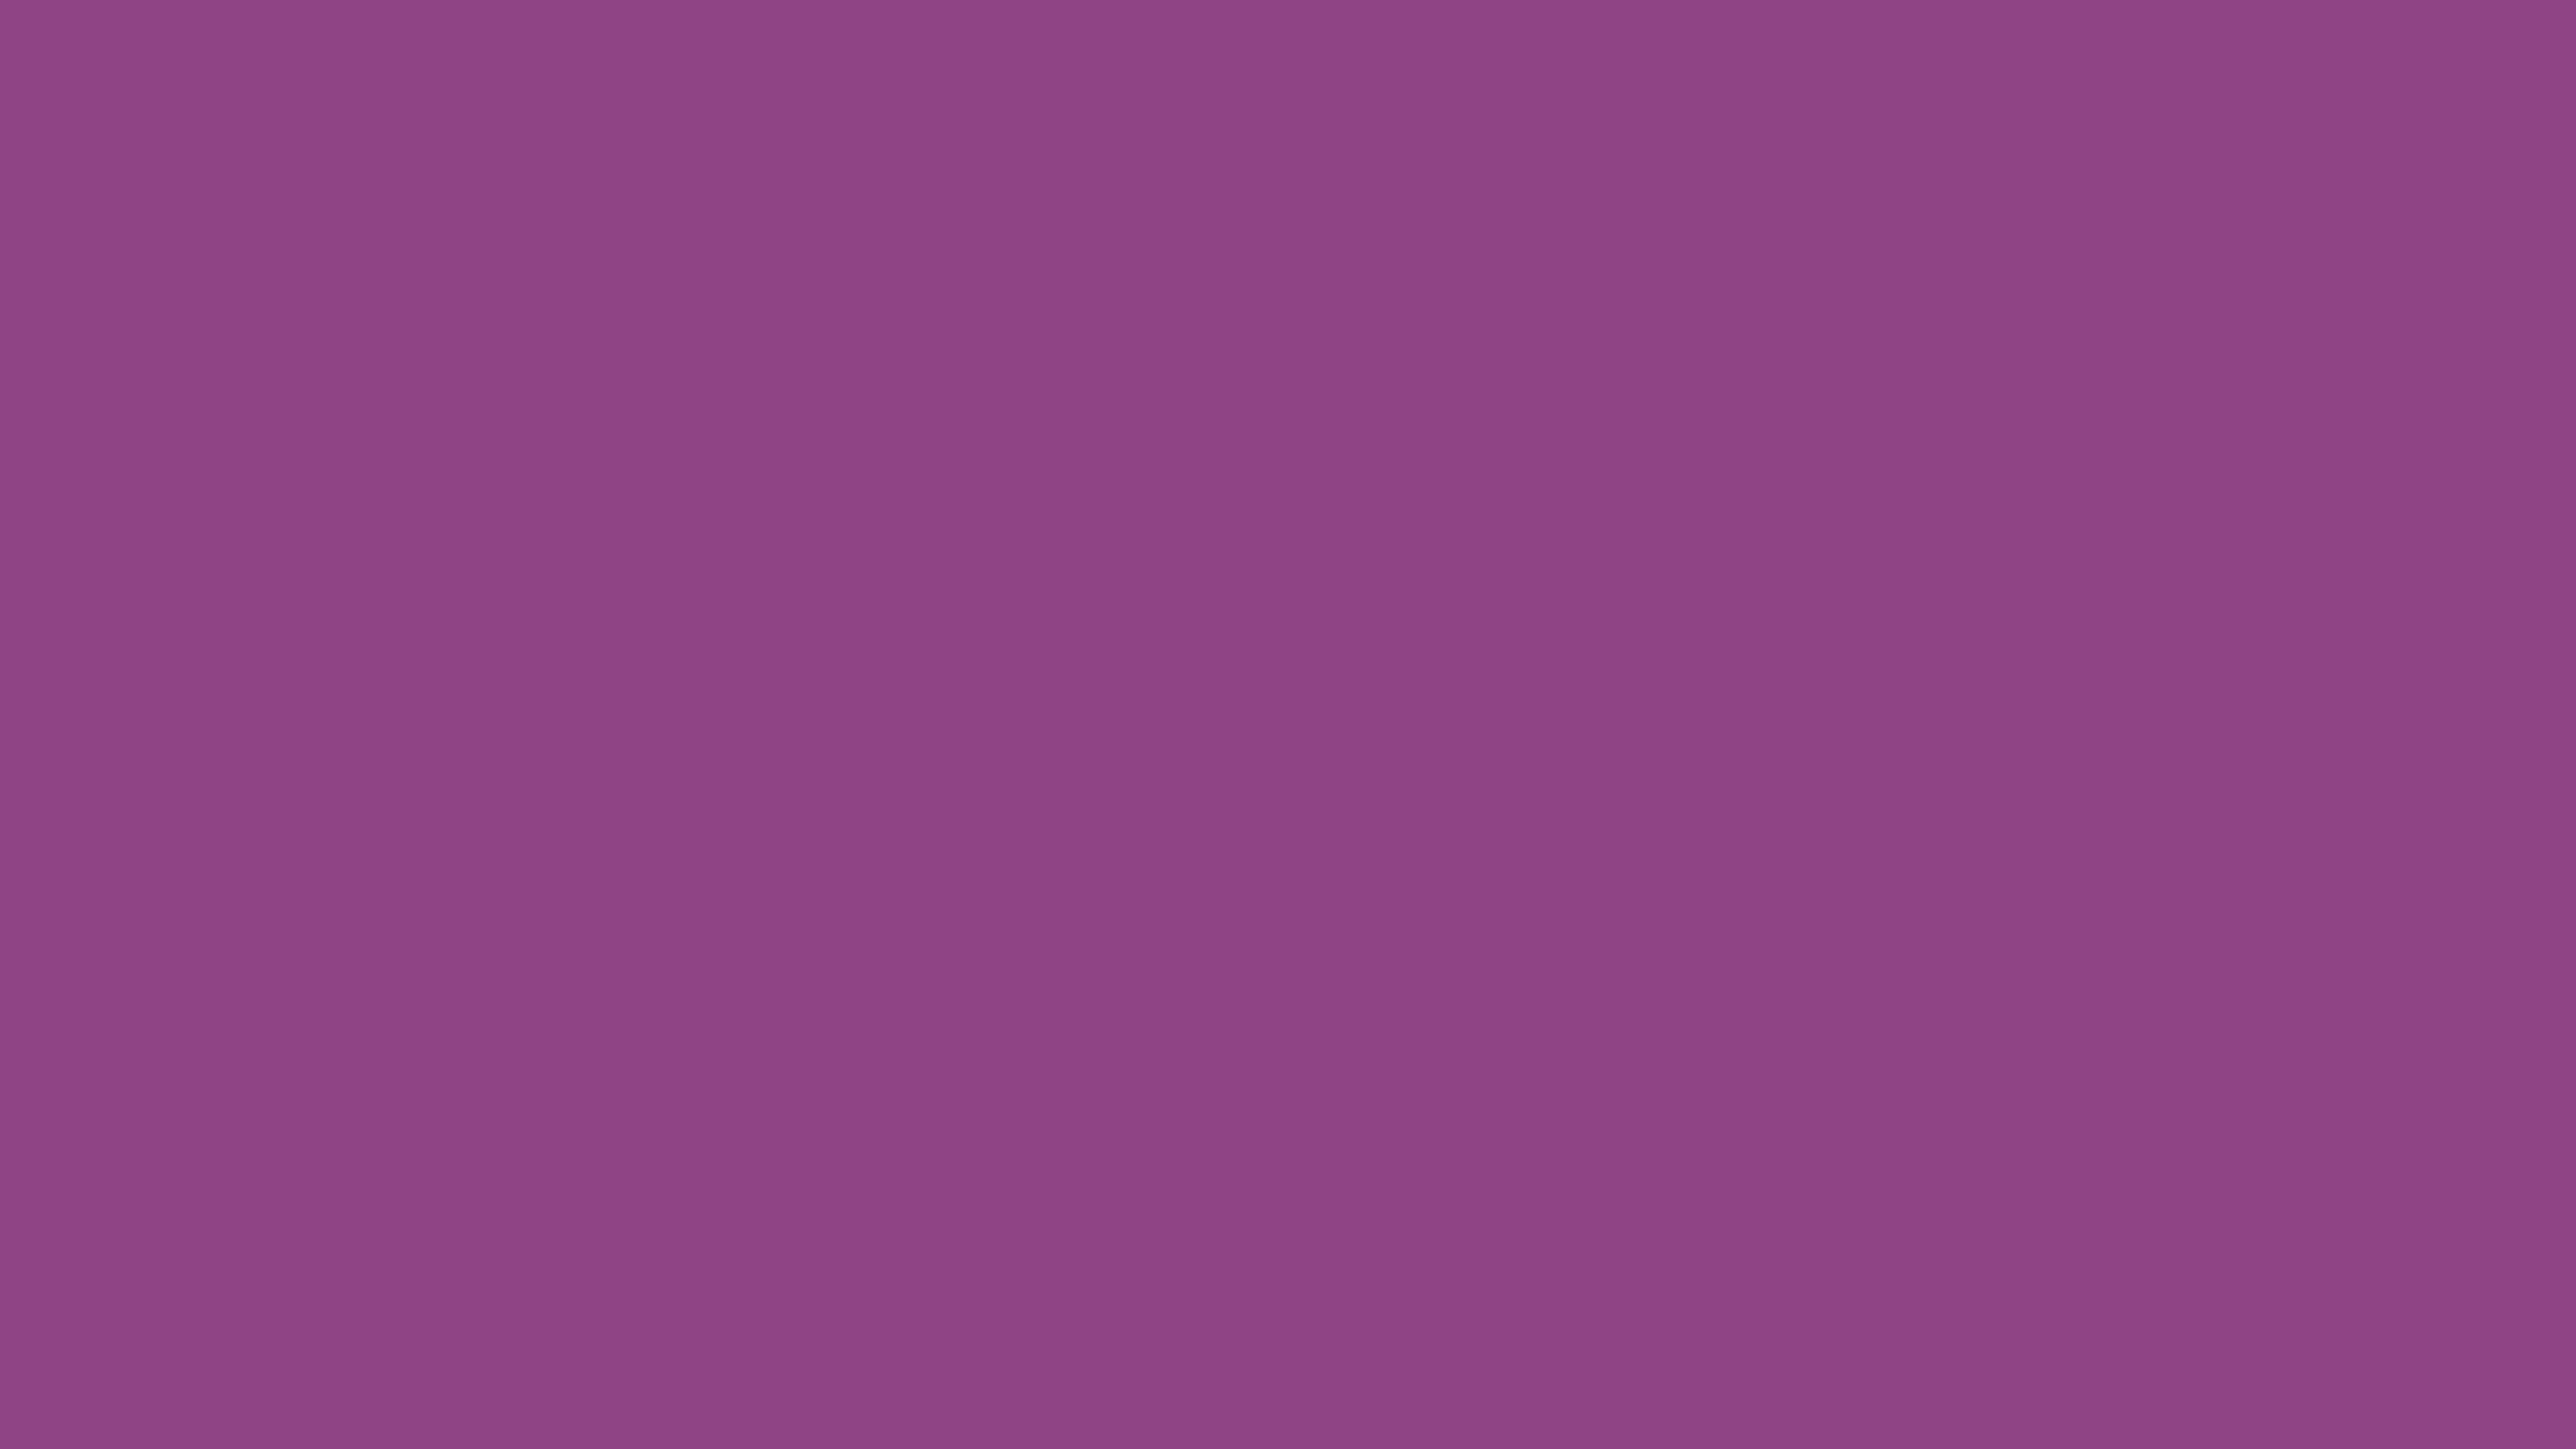 4096x2304 Plum Traditional Solid Color Background